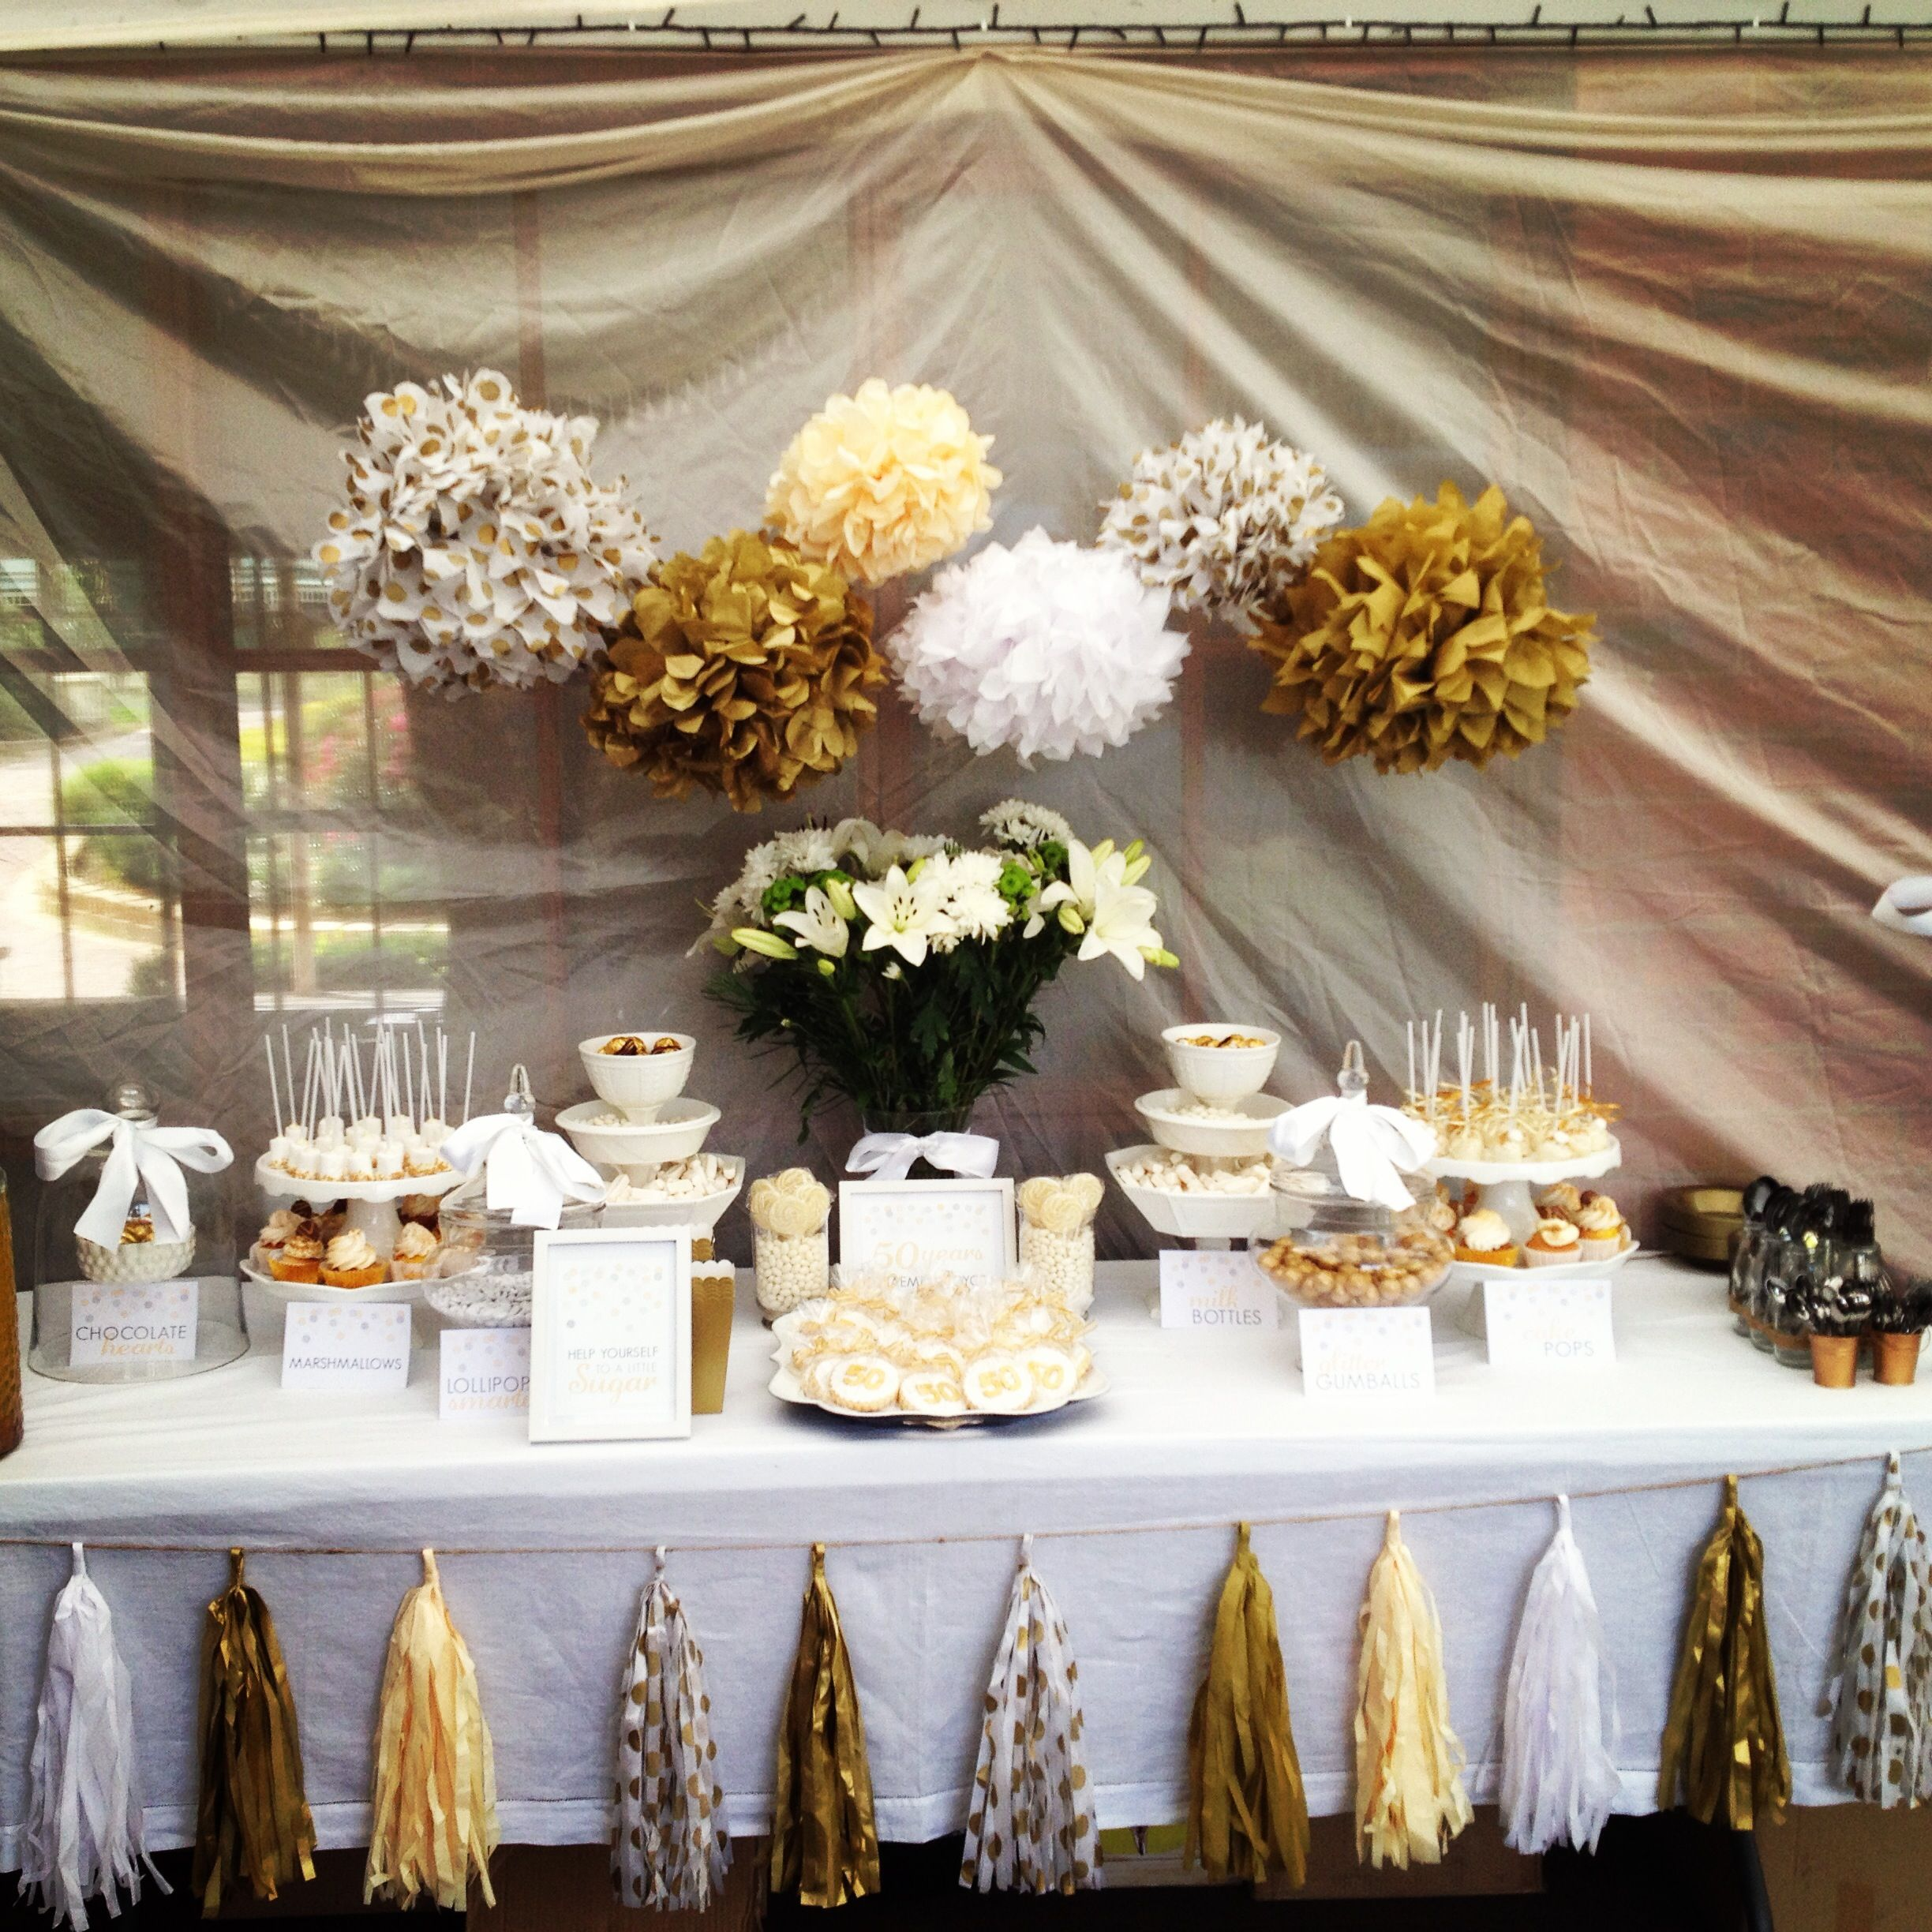 Wedding Party Decorations: Polkadot Parties - 50th Wedding Anniversary